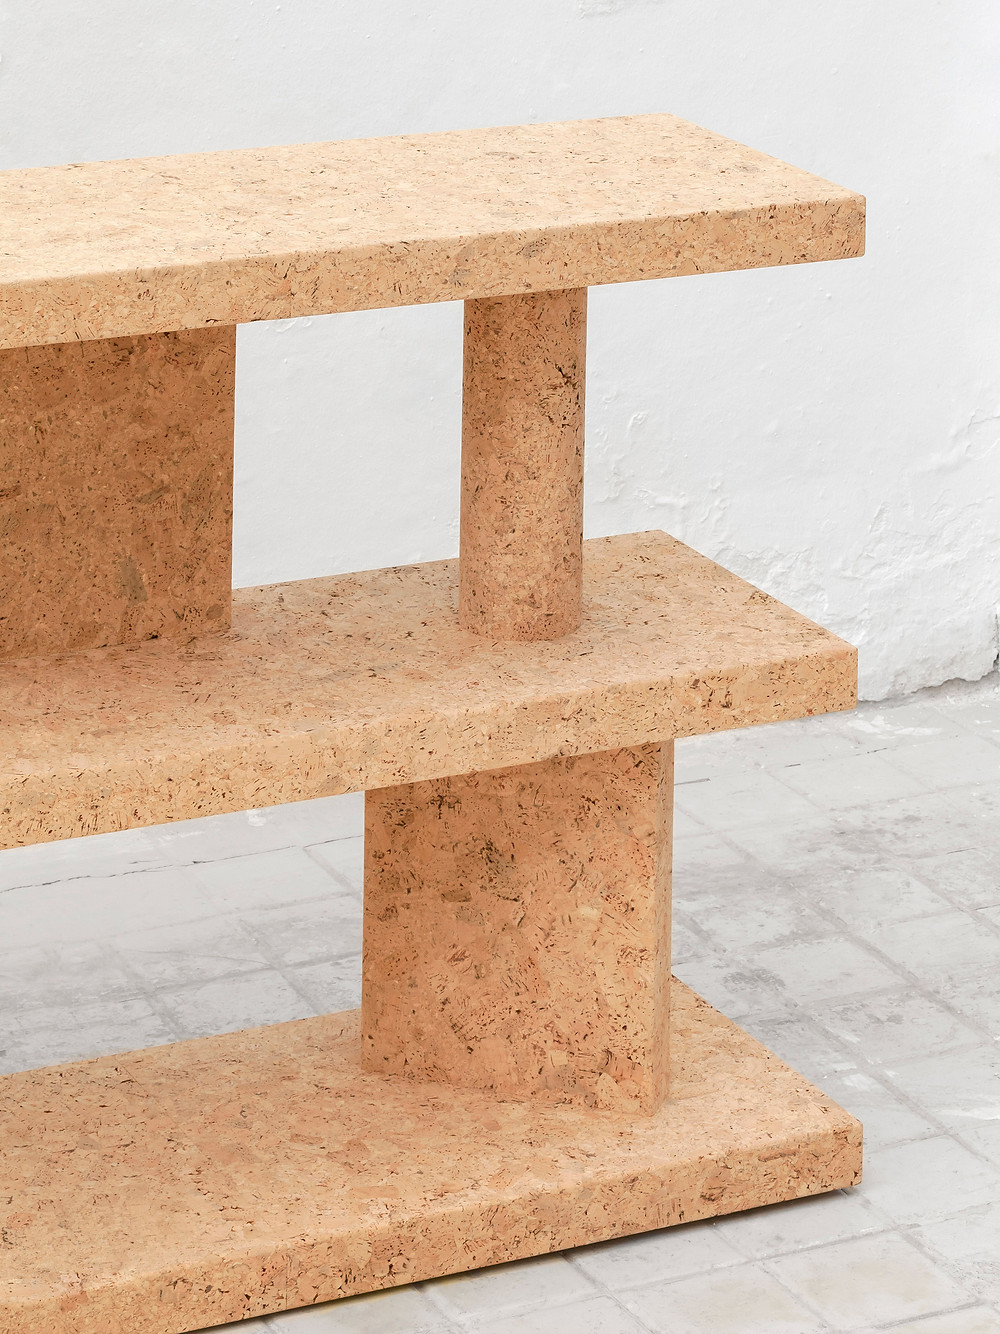 An exhibition of cork furniture by Jasper Morrison has opened at the Kasmin in New York's Chelsea, the designer's first solo show in North America.  Called Corks, the show brings together items of furniture by the London-based designer that are all realised entirely in cork.